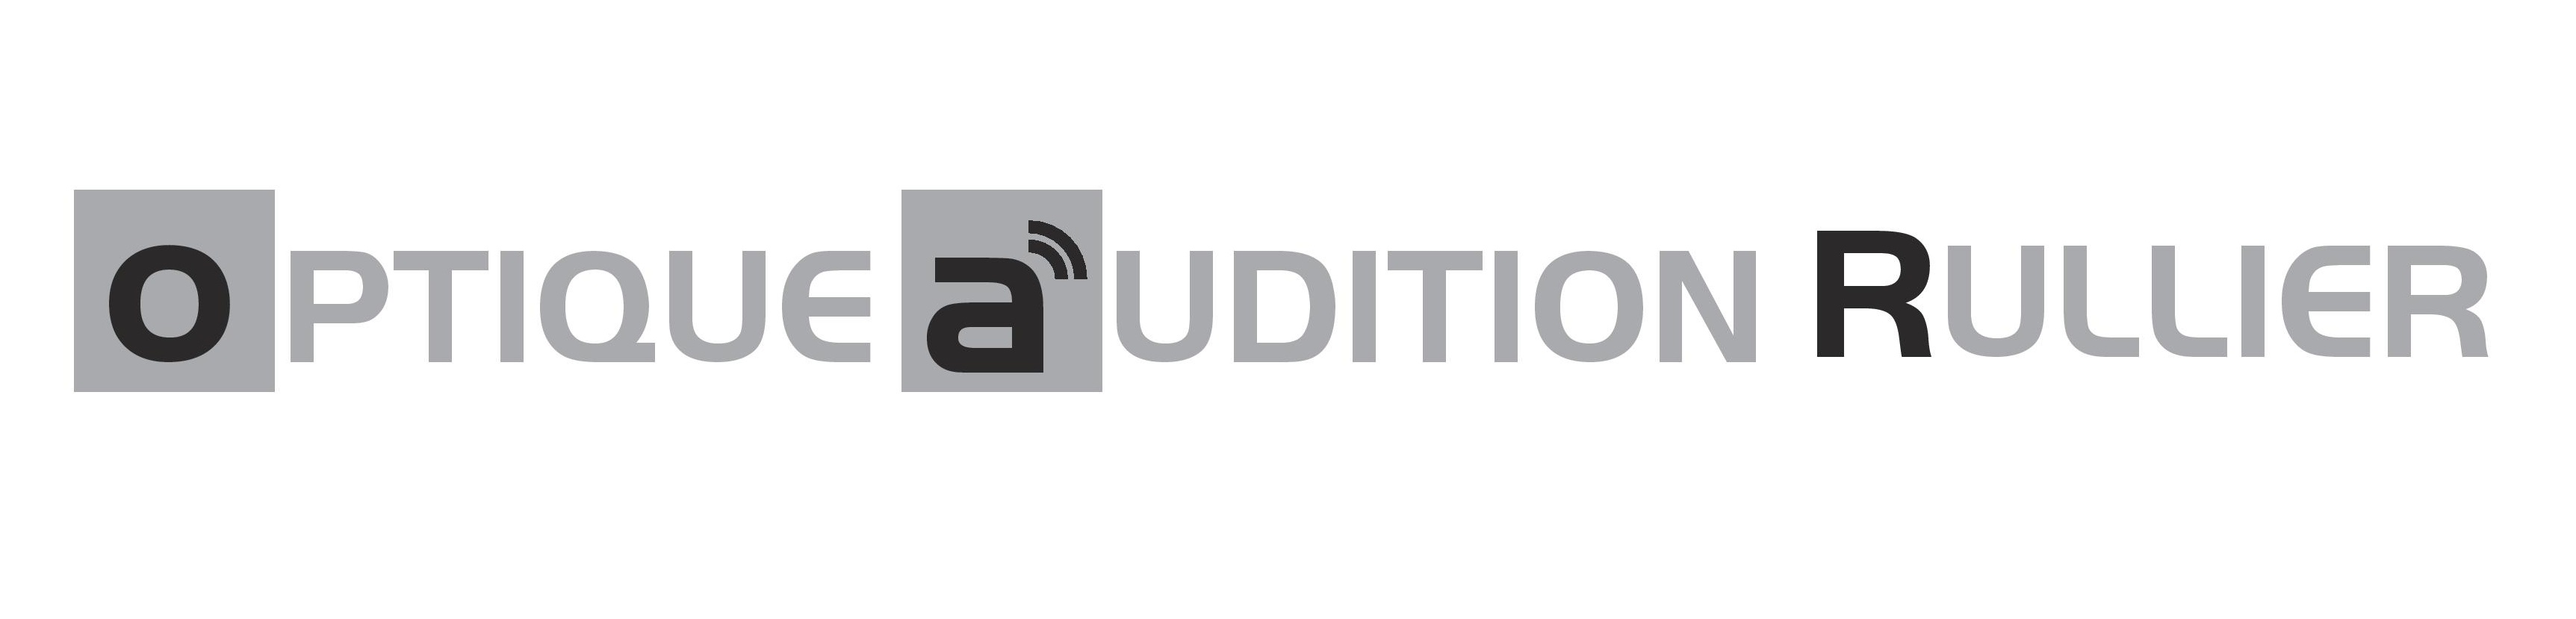 Audition Rullier